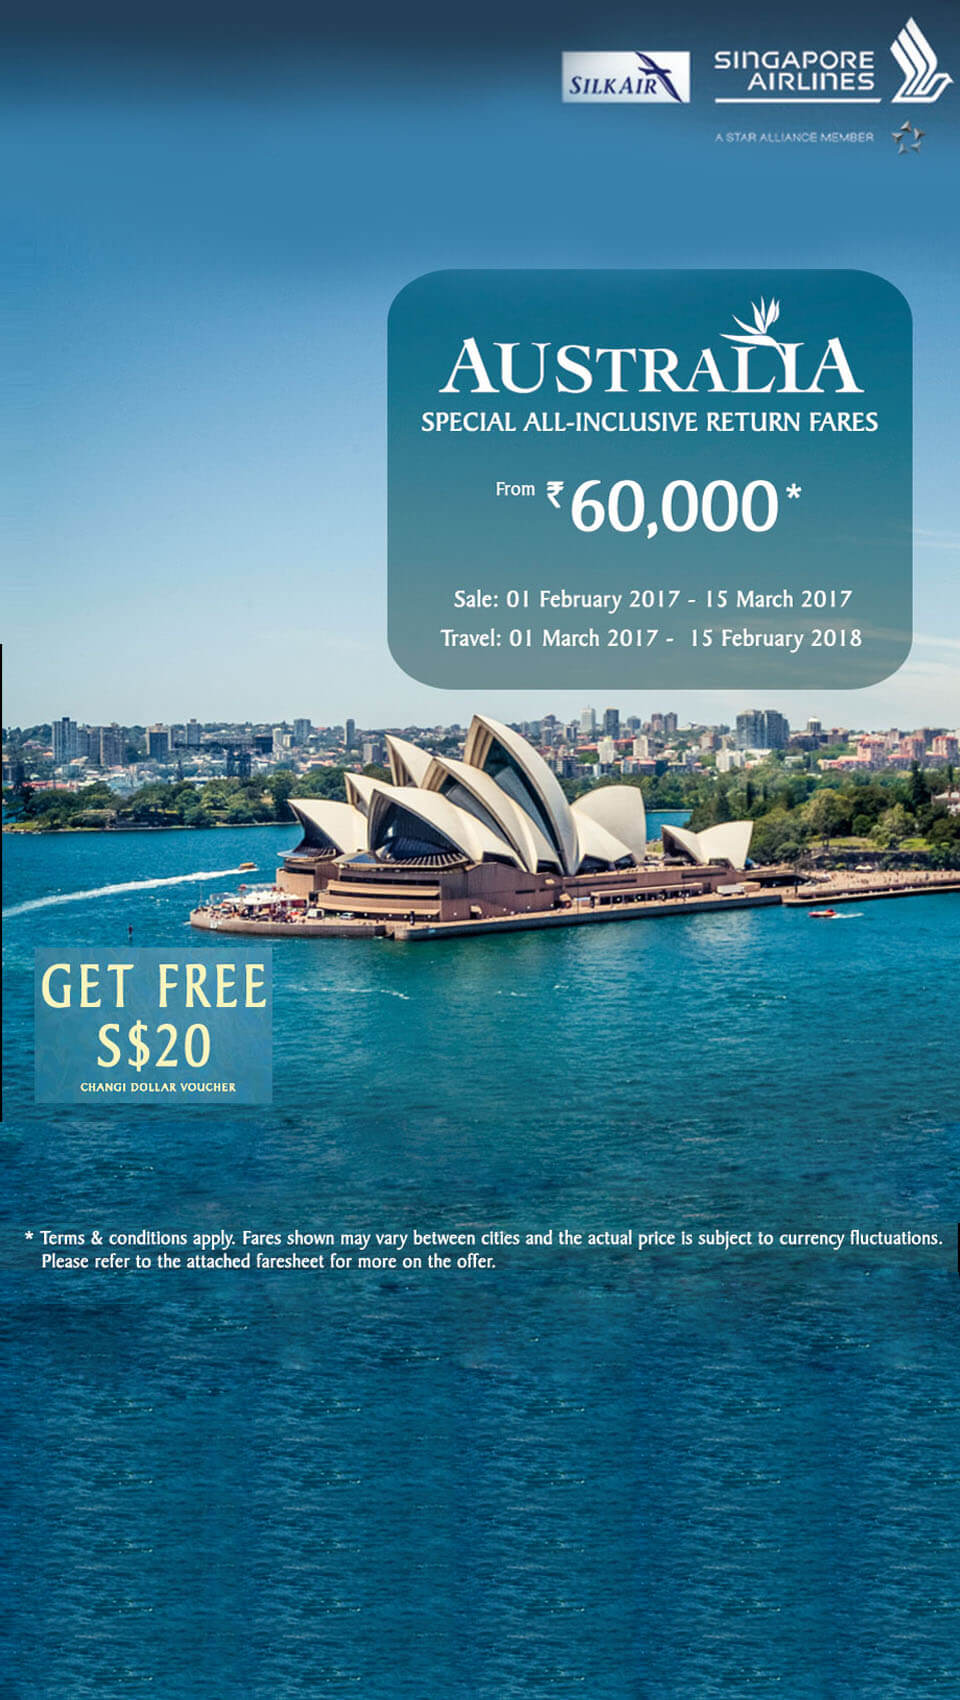 SINGAPORE AIRLINES - singaporeair - buzztm - View latest air fare deals and promotions from SIA. Book and plan your holiday destinations with Singapore Airlines